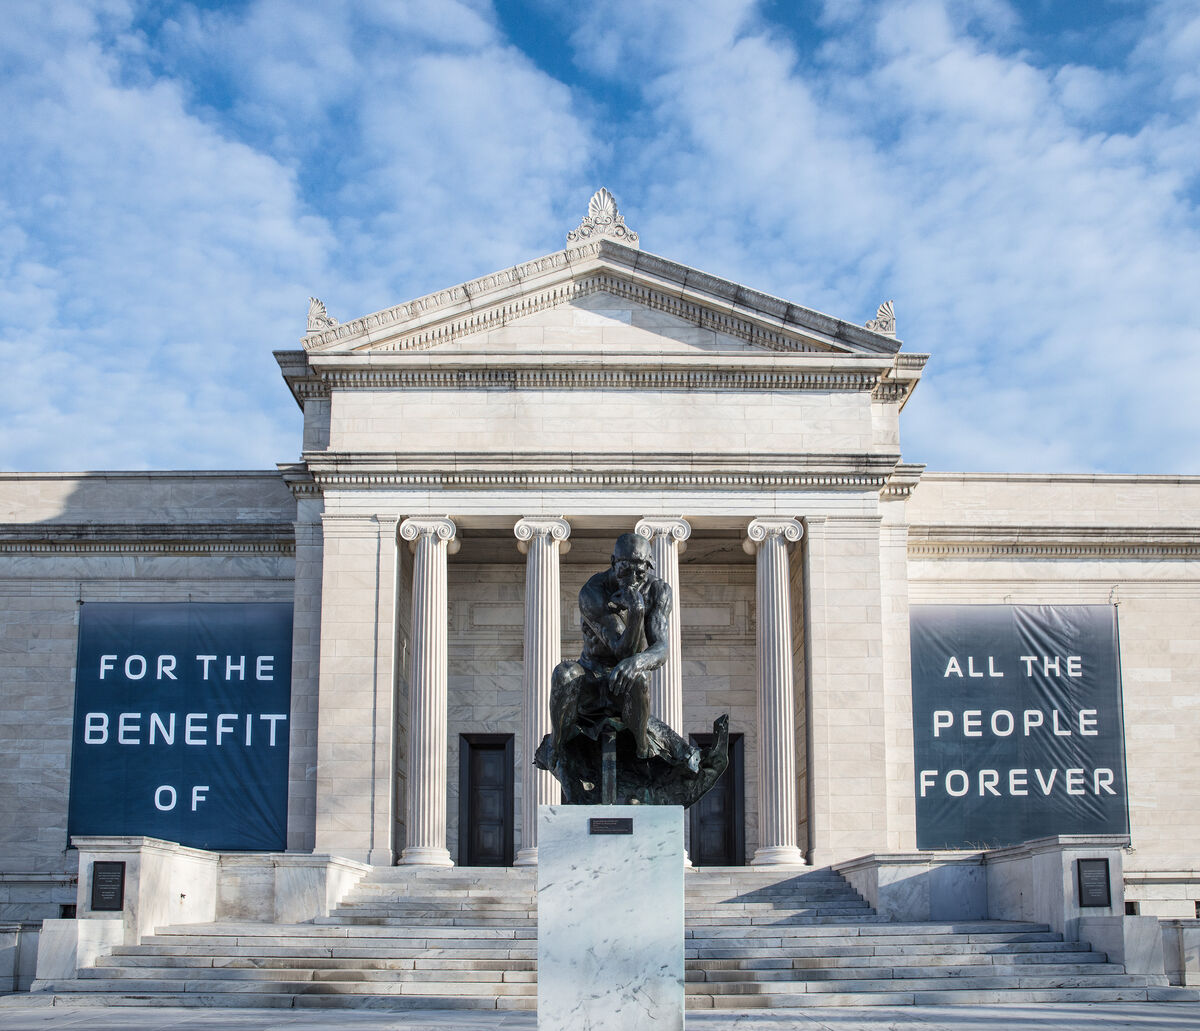 Exterior view of Cleveland Museum of Art. Photo by Howard Agriesti. Courtesy of the Cleveland Museum of Art.